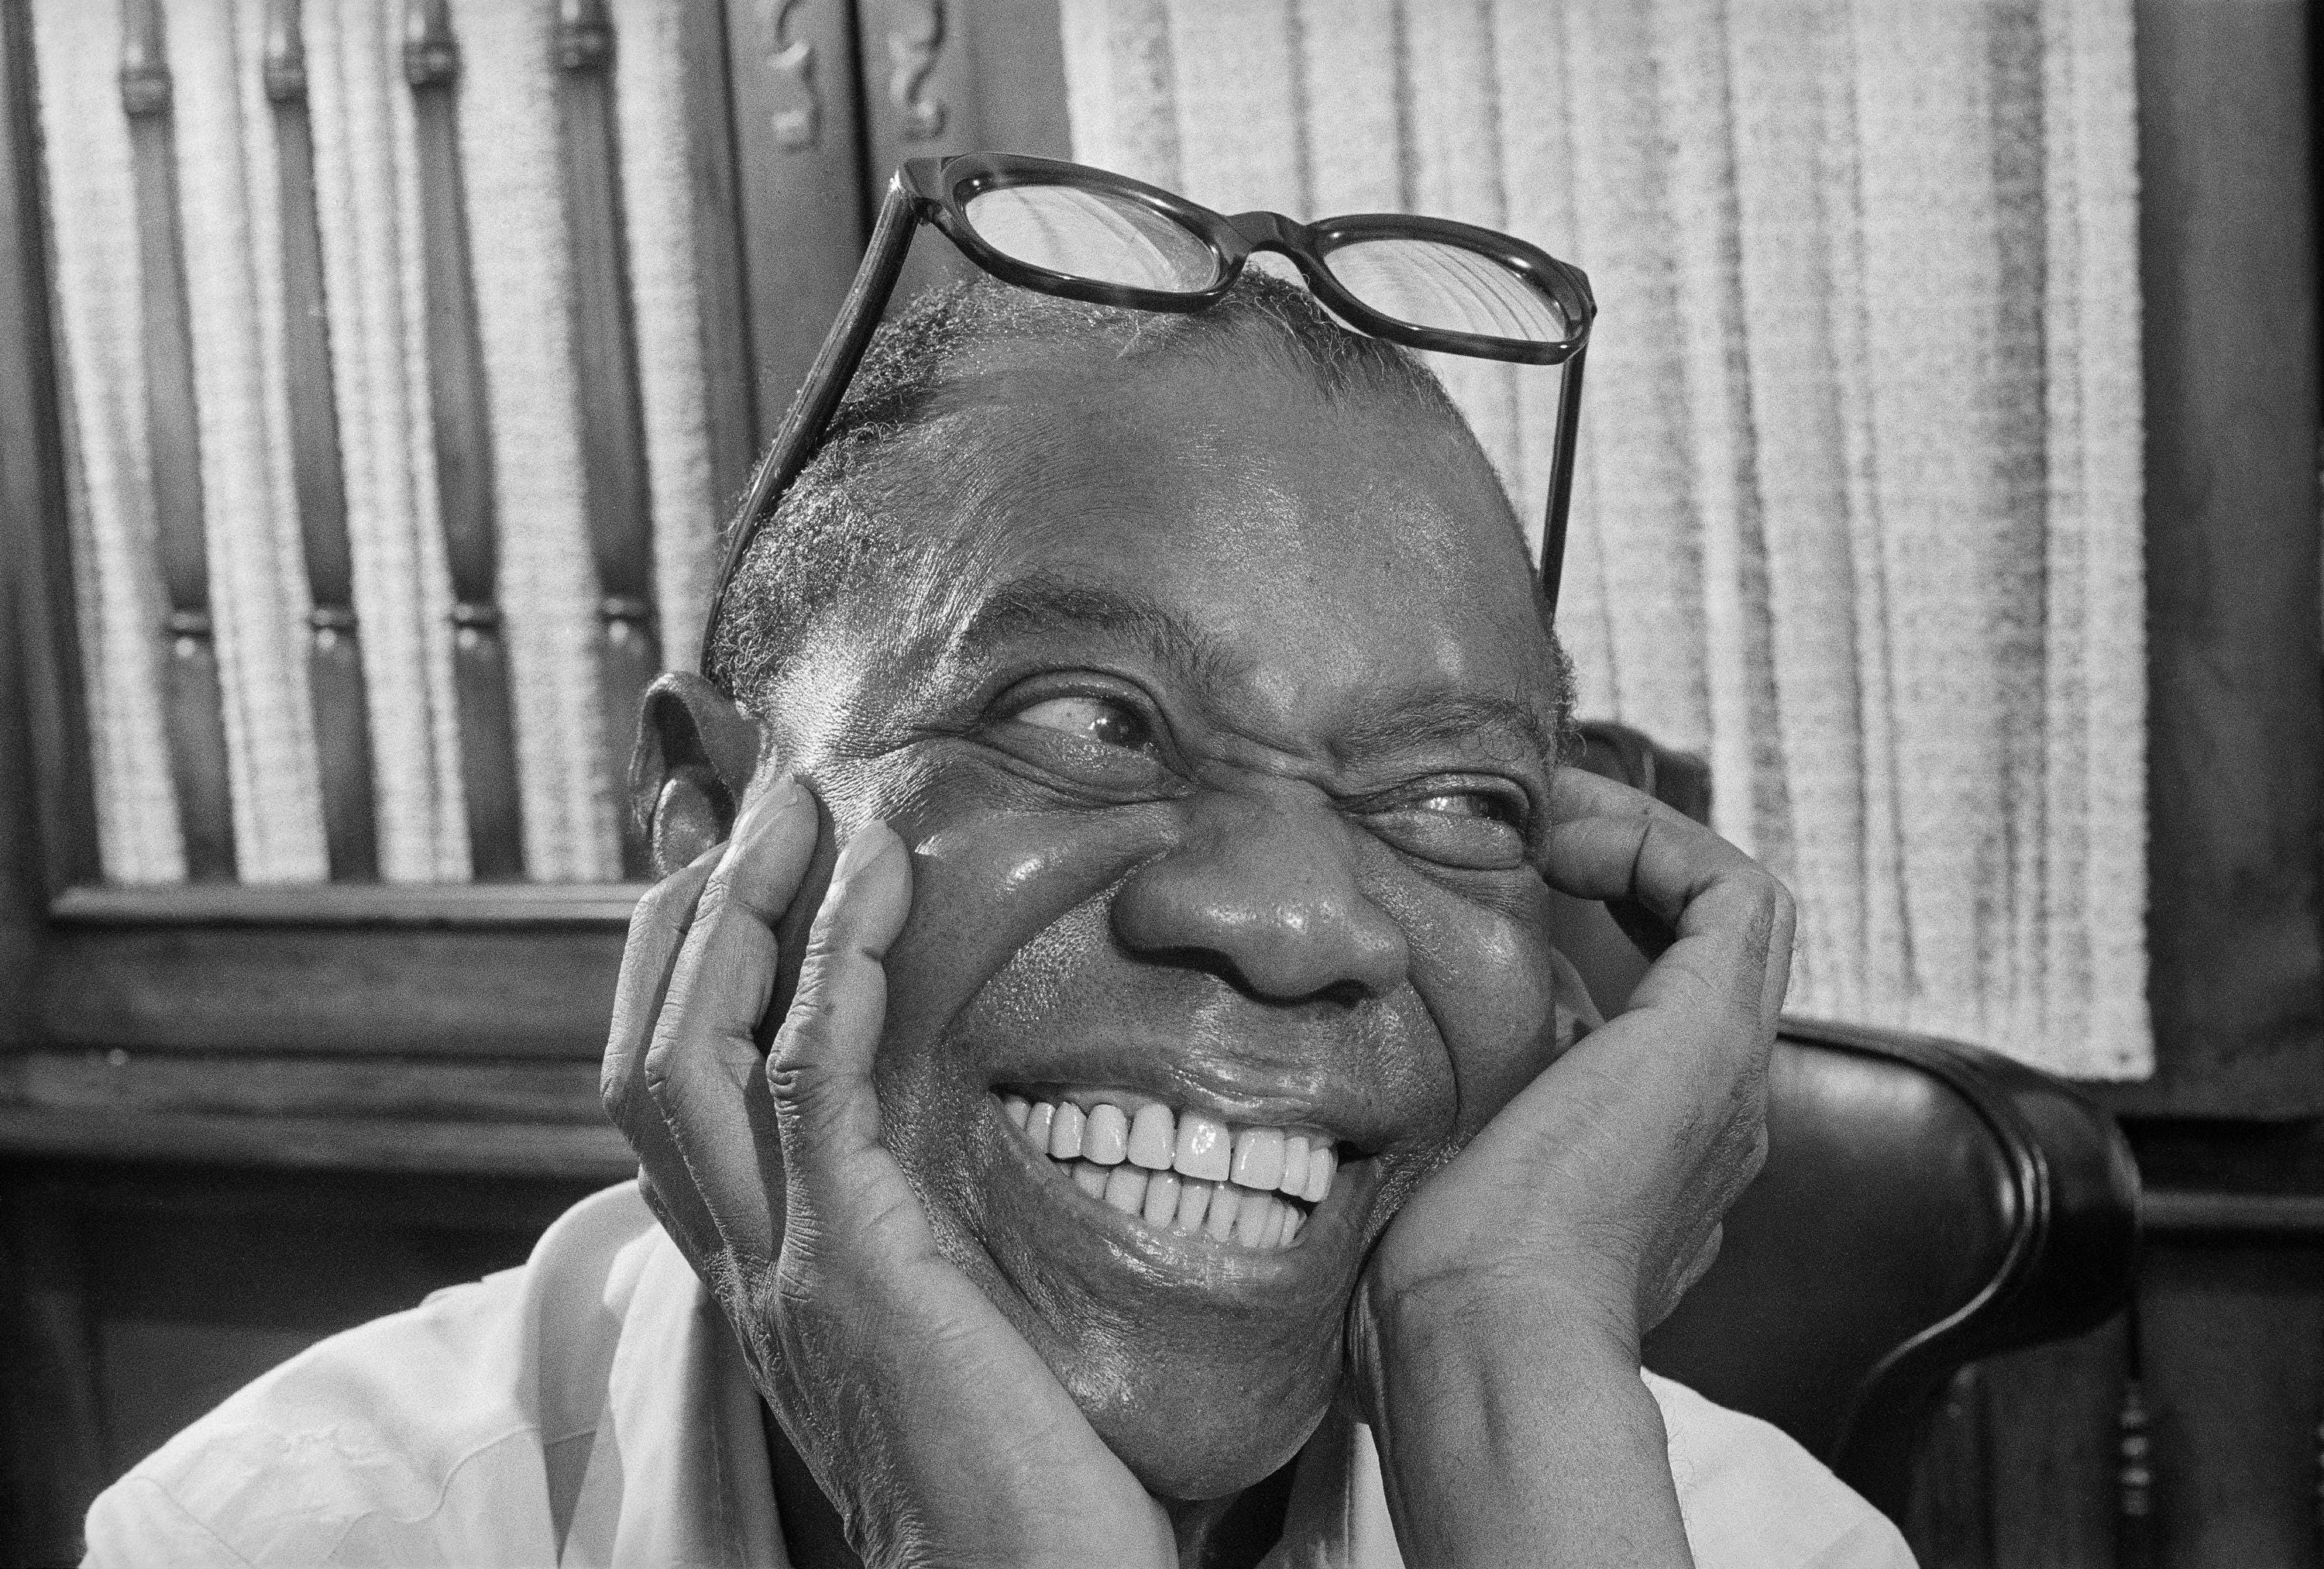 Jazz musician Louis Armstrong smiles as he recalls the old days during an interview at his home in Queens, New York, on June 10, 1970.